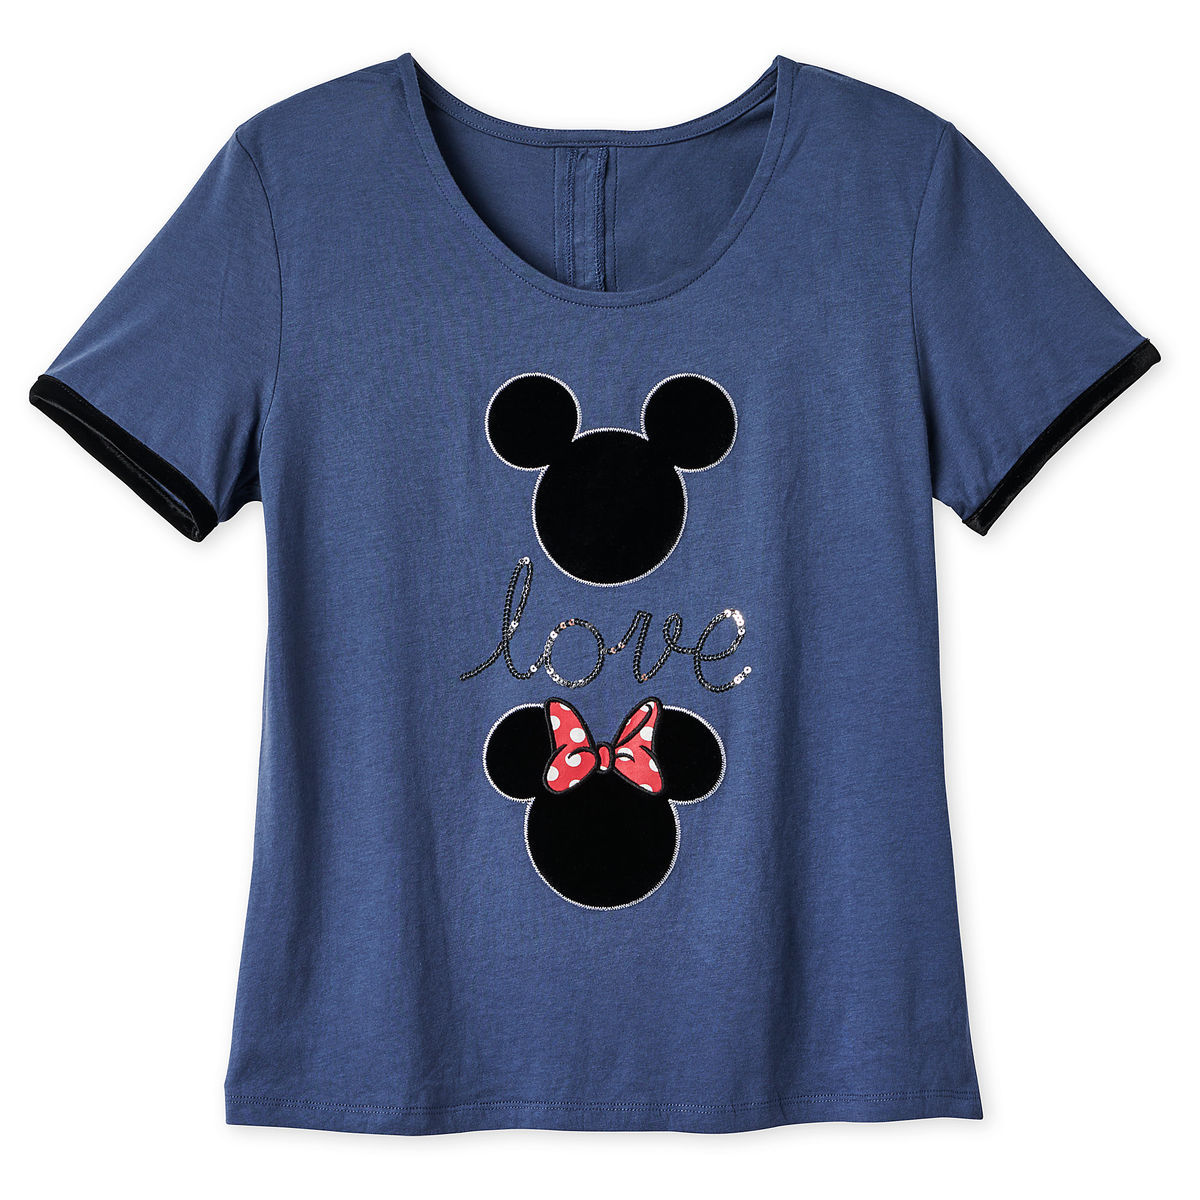 c5a1e7aed Disney T-Shirt for Women - Mickey and Minnie Icon - Love - Blue